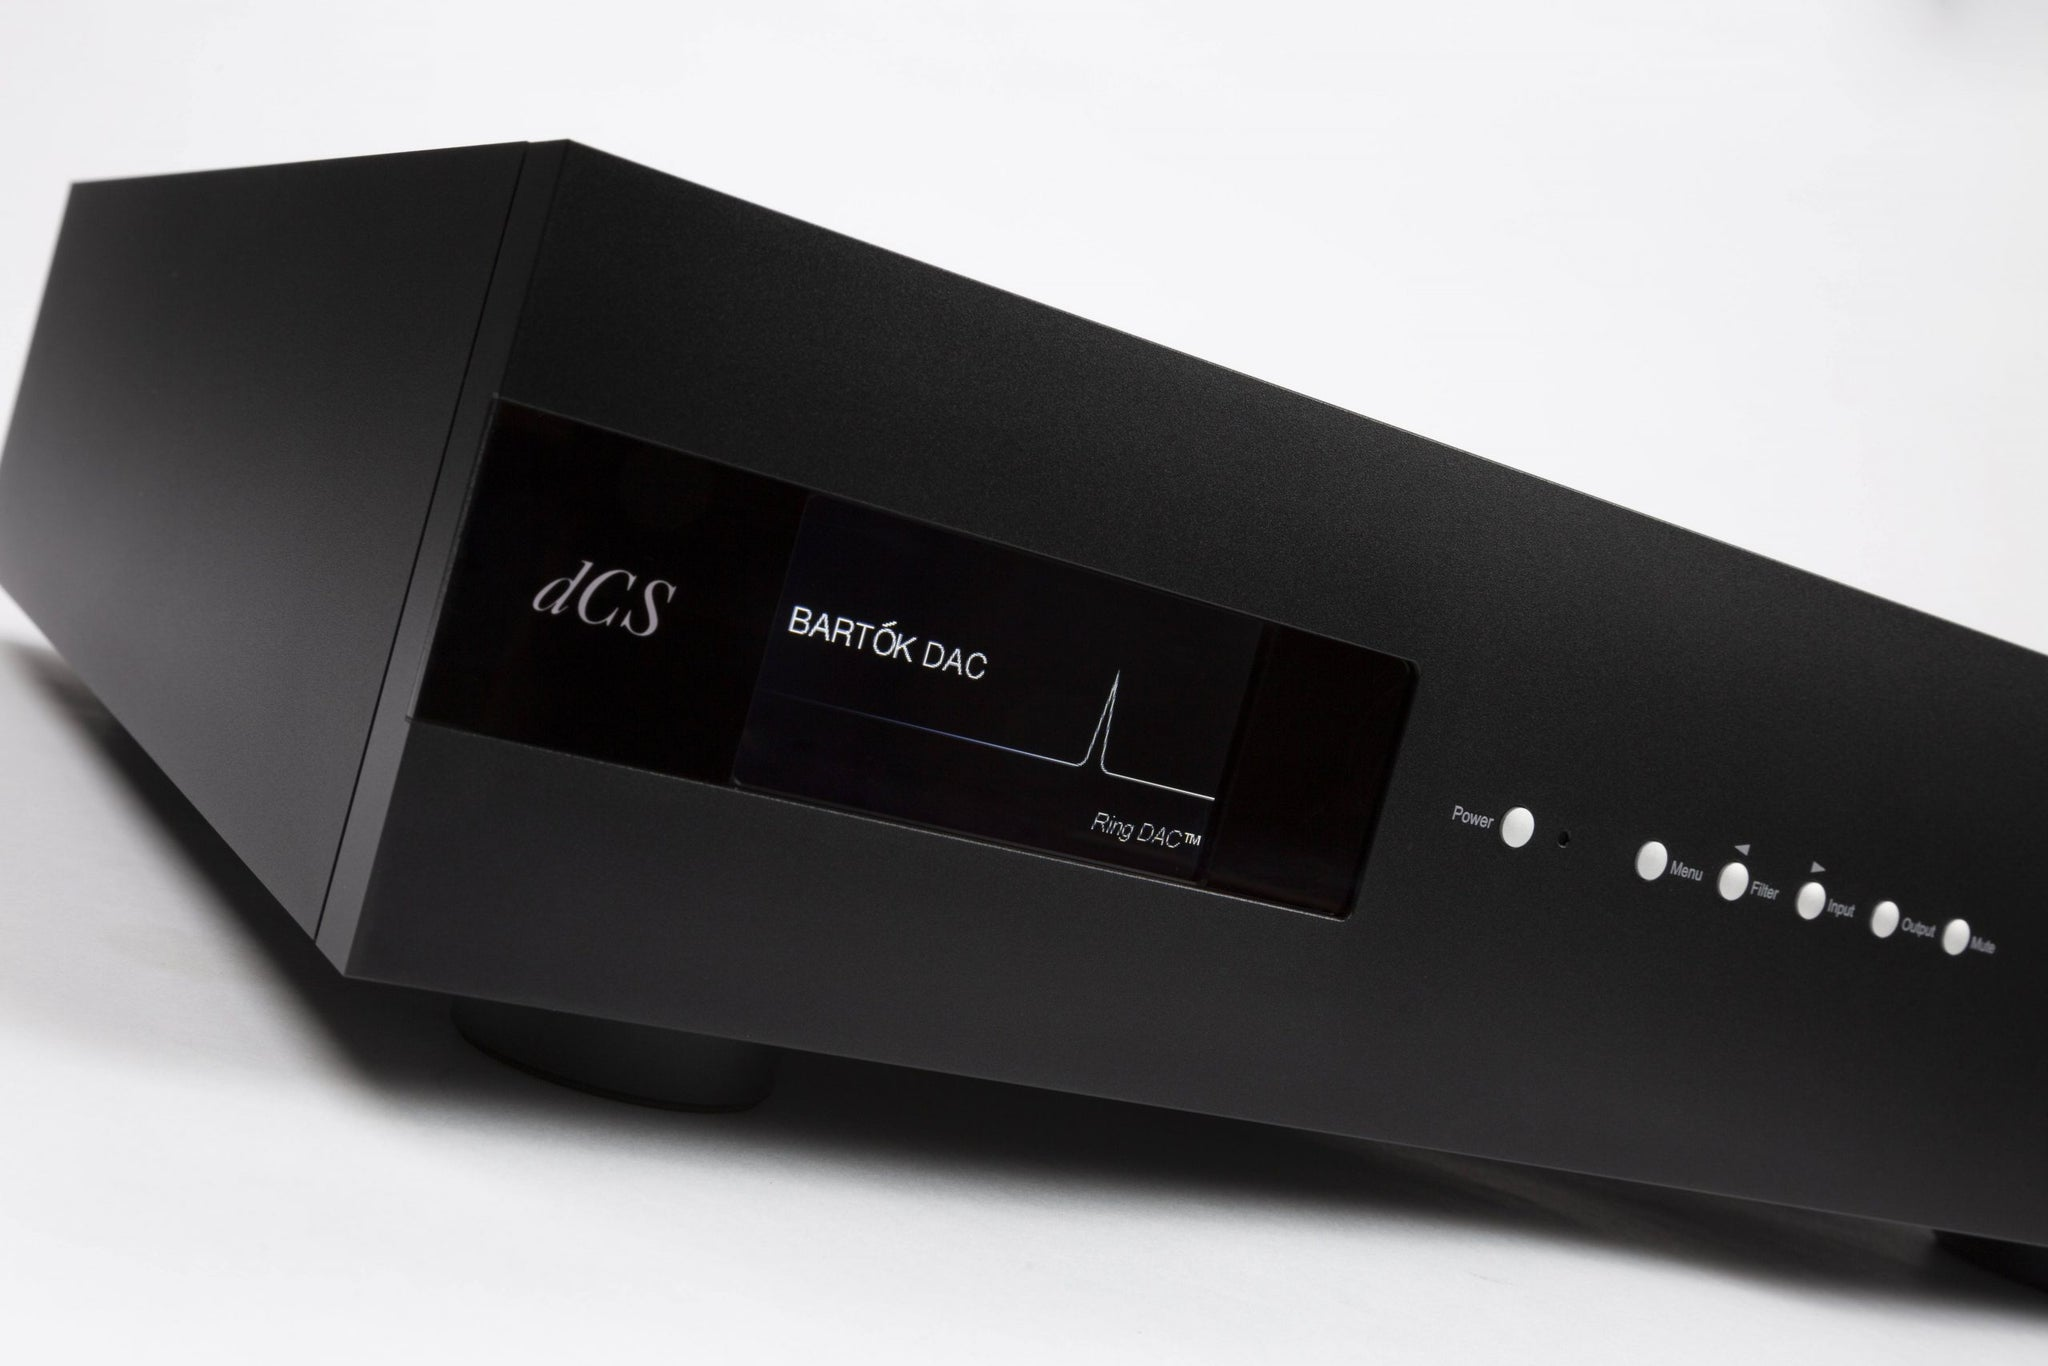 dCS Bartók DAC with Headphone Amplifier